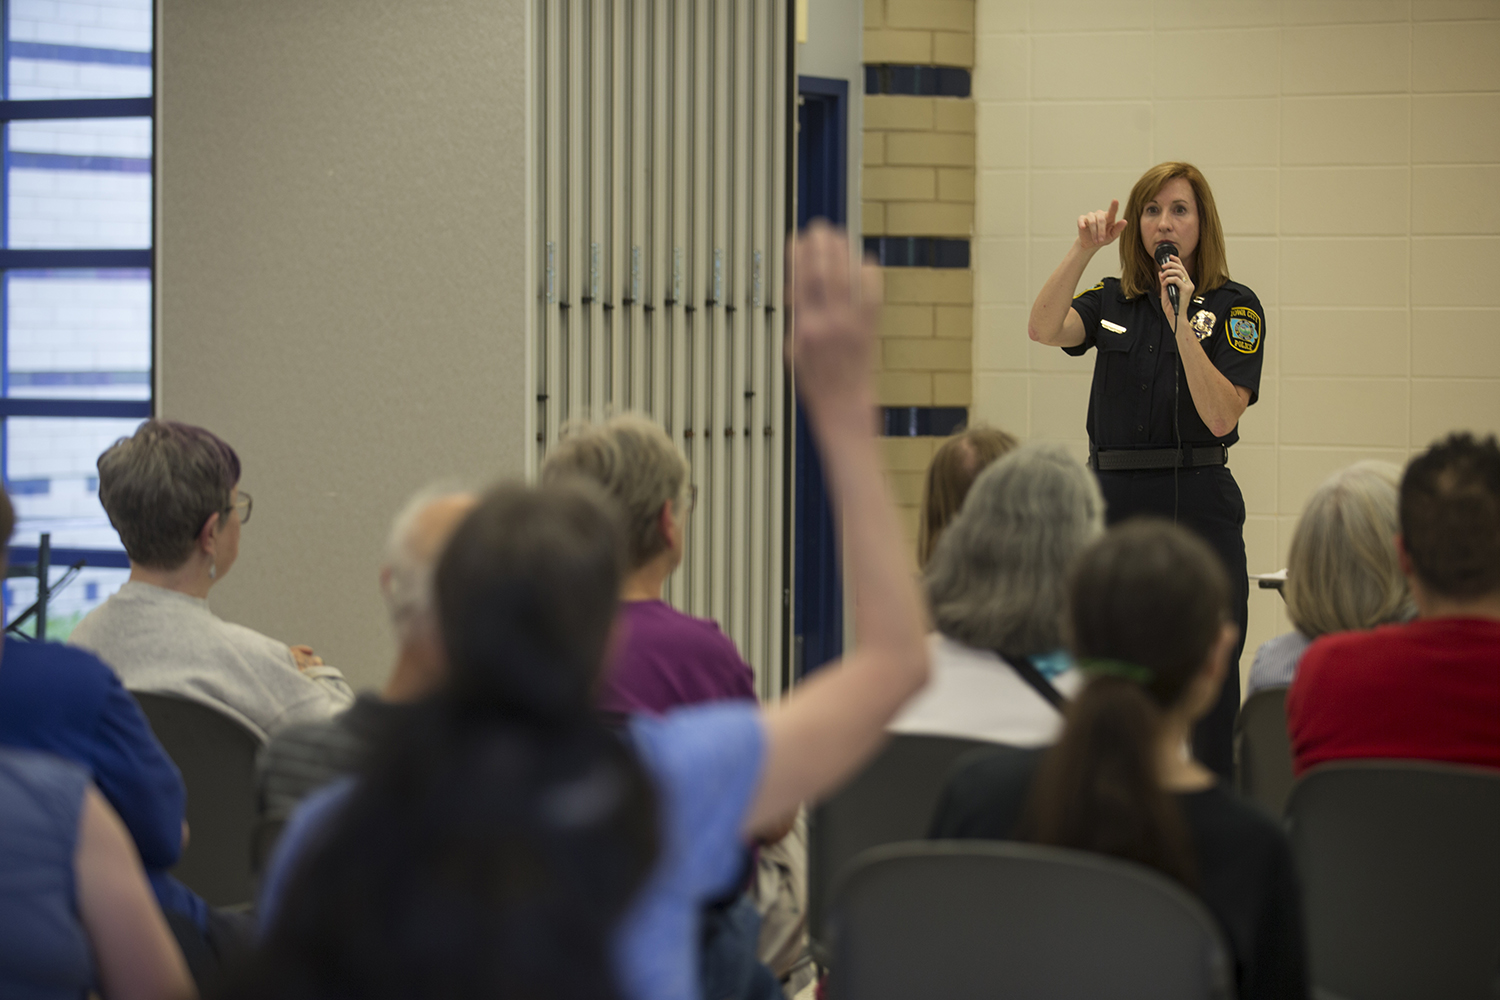 Iowa City Police Captain Denise Brotherton addresses the audience during a community meeting on the shooting at Mercer Park Aquatic Center on June 17, 2019. Police answered questions on community safety and police measures. (Katie Goodale/The Daily Iowan)